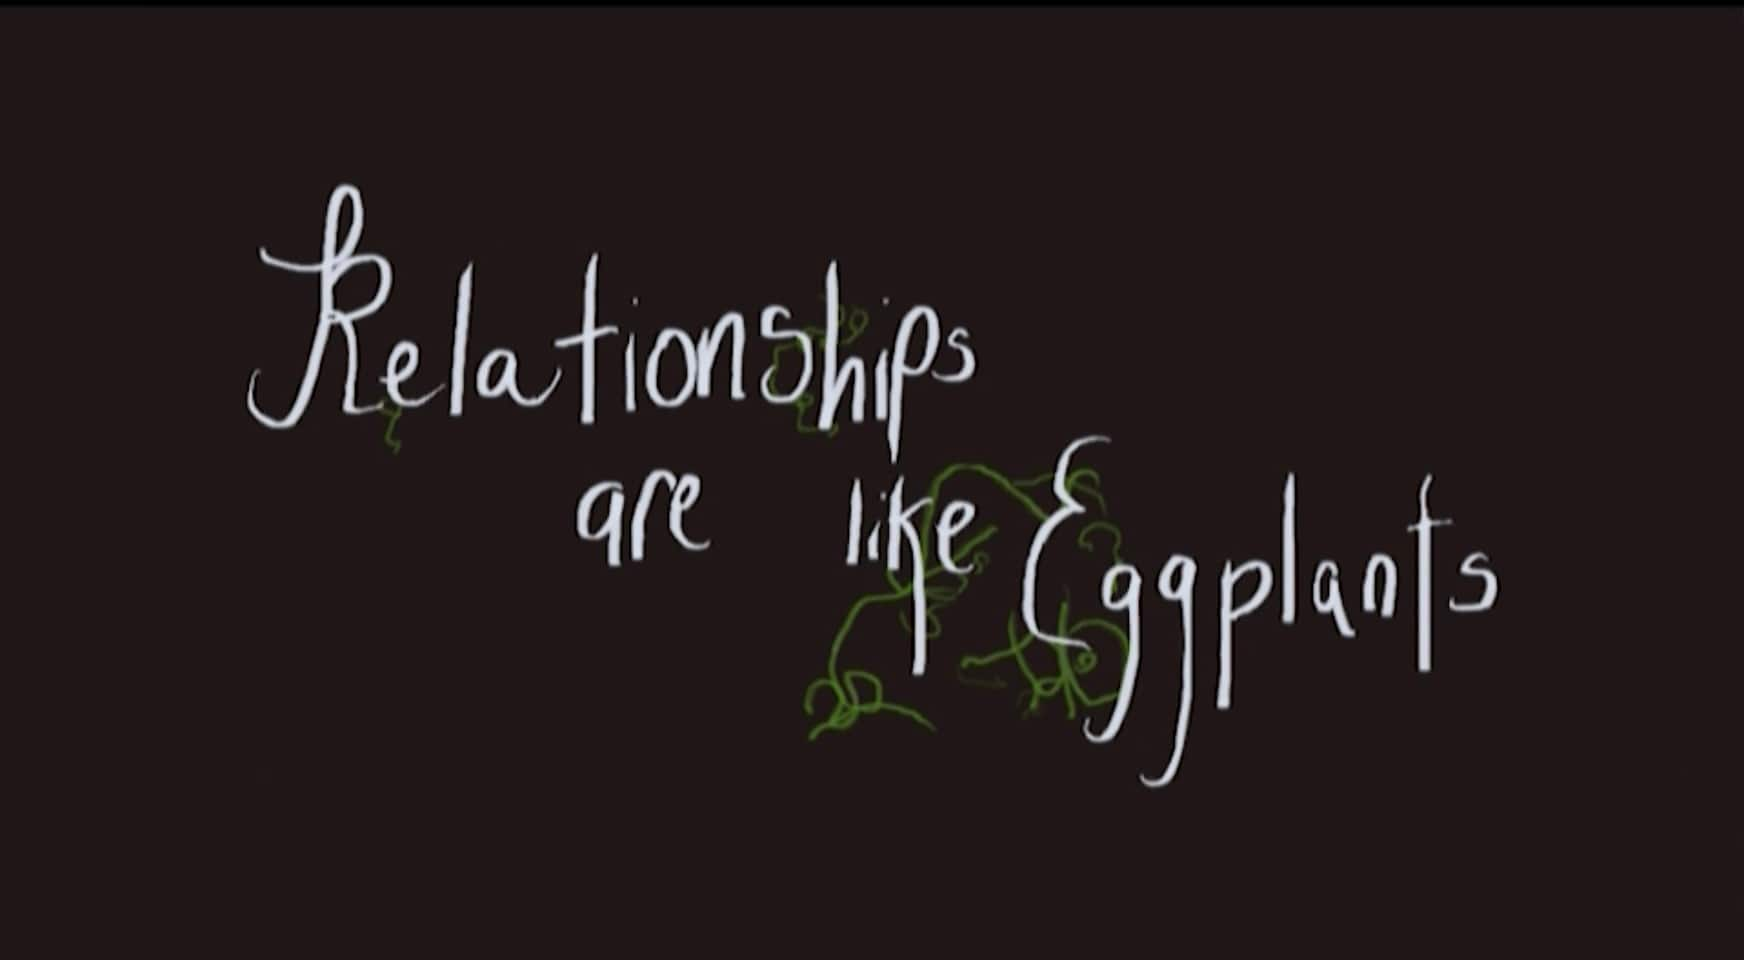 Relationships are Like Eggplants